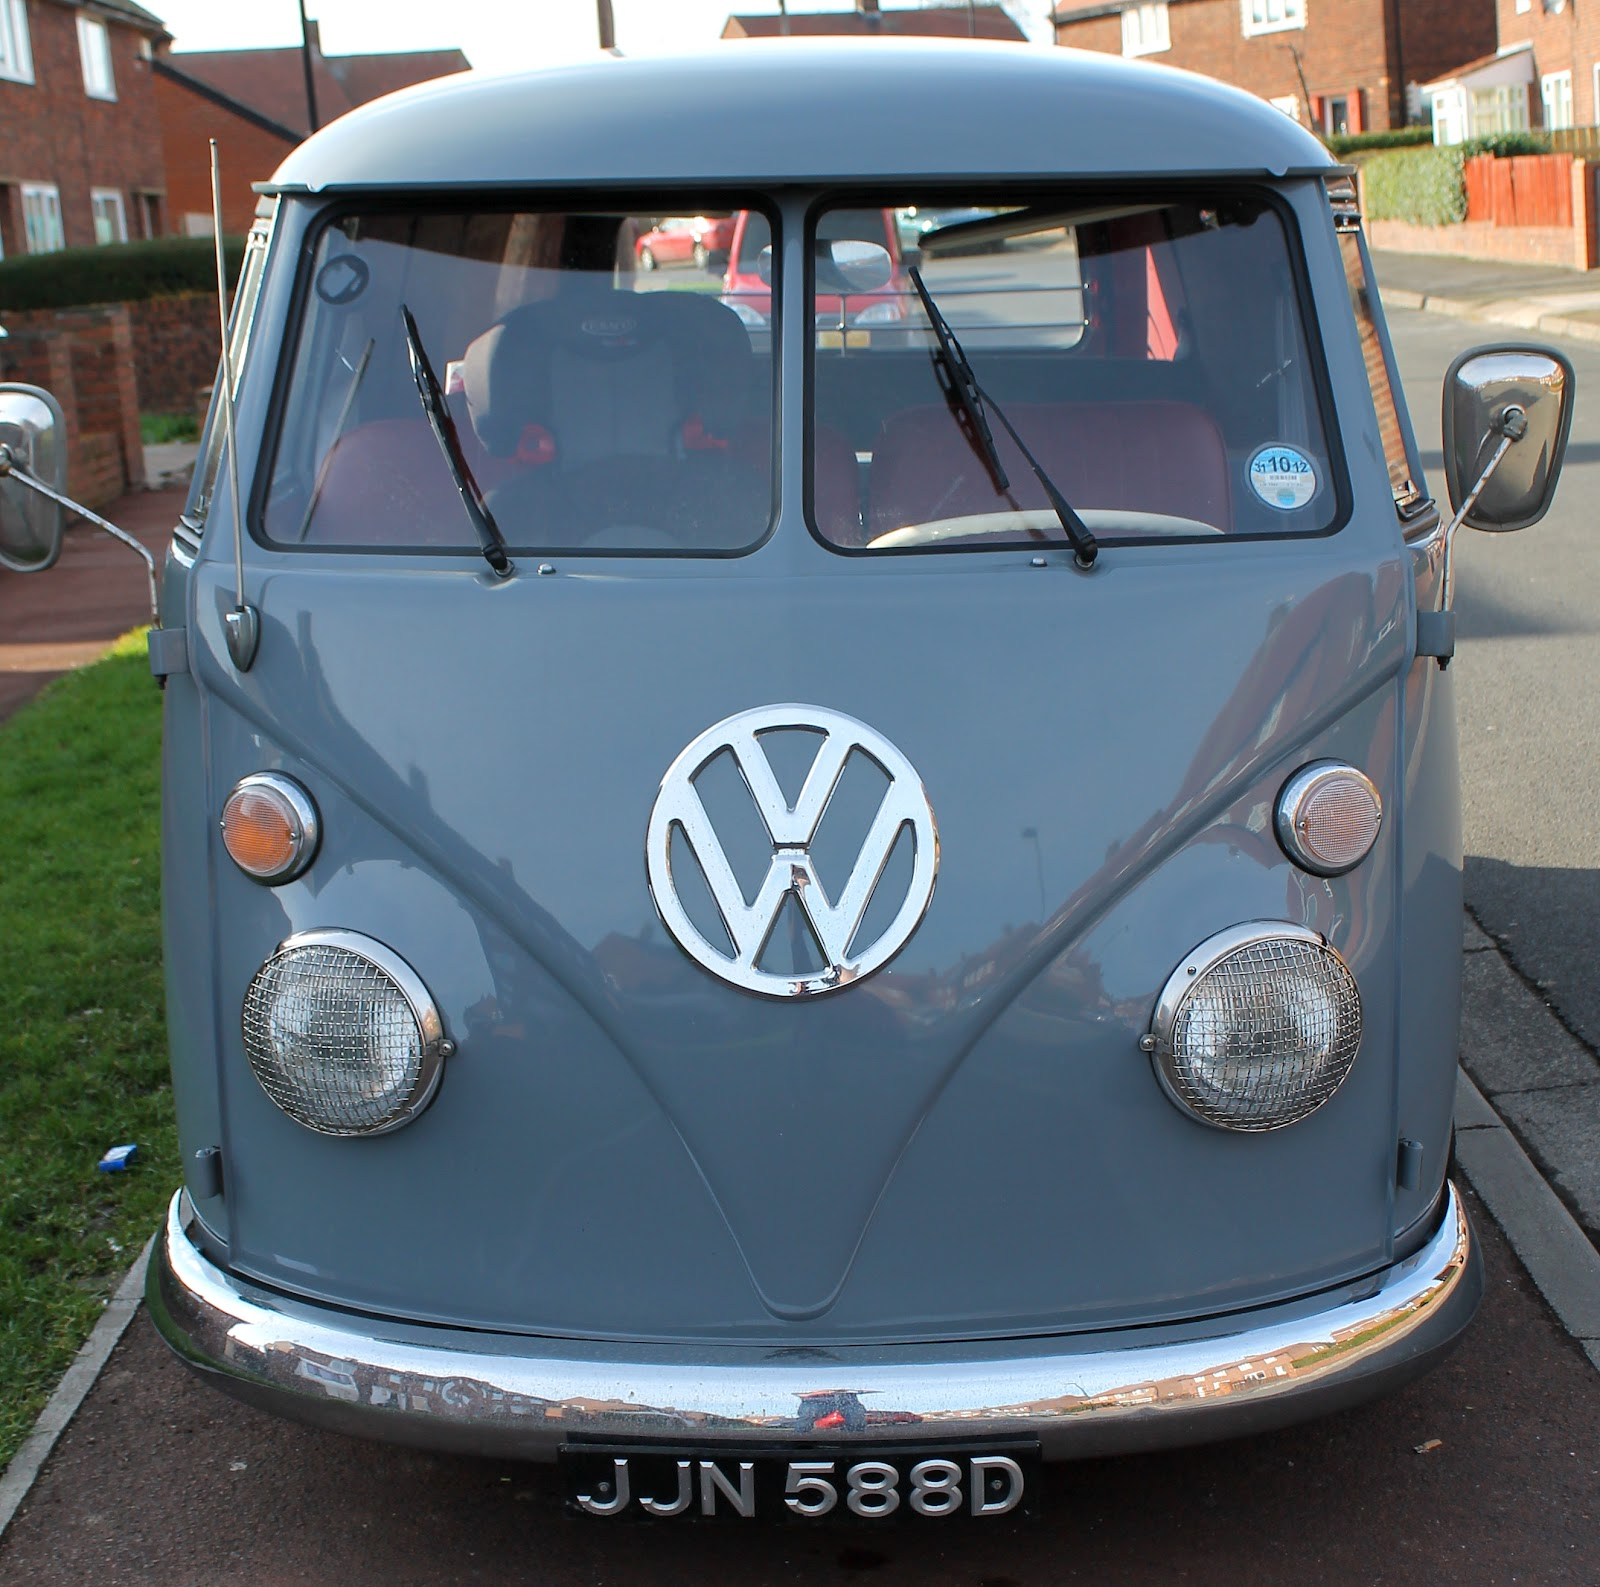 Beautiful V-Dub panel van owned by Paul J.